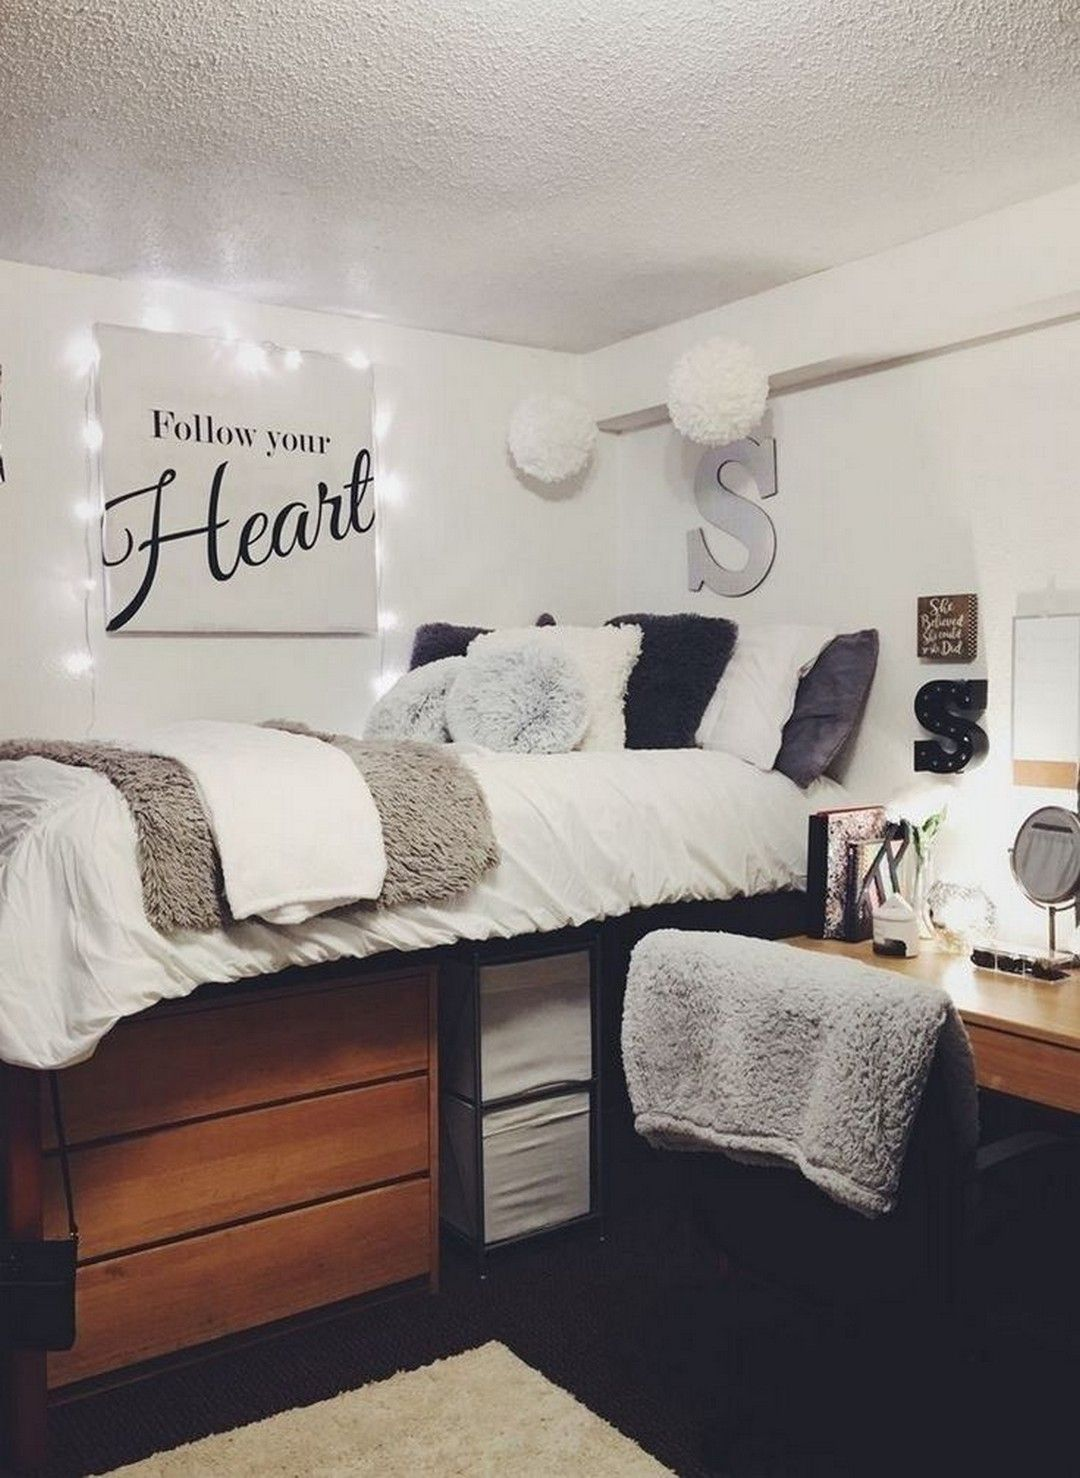 20 Cute Dorm Room Ideas That You Need to Copy Right Now #collegedormroomideas